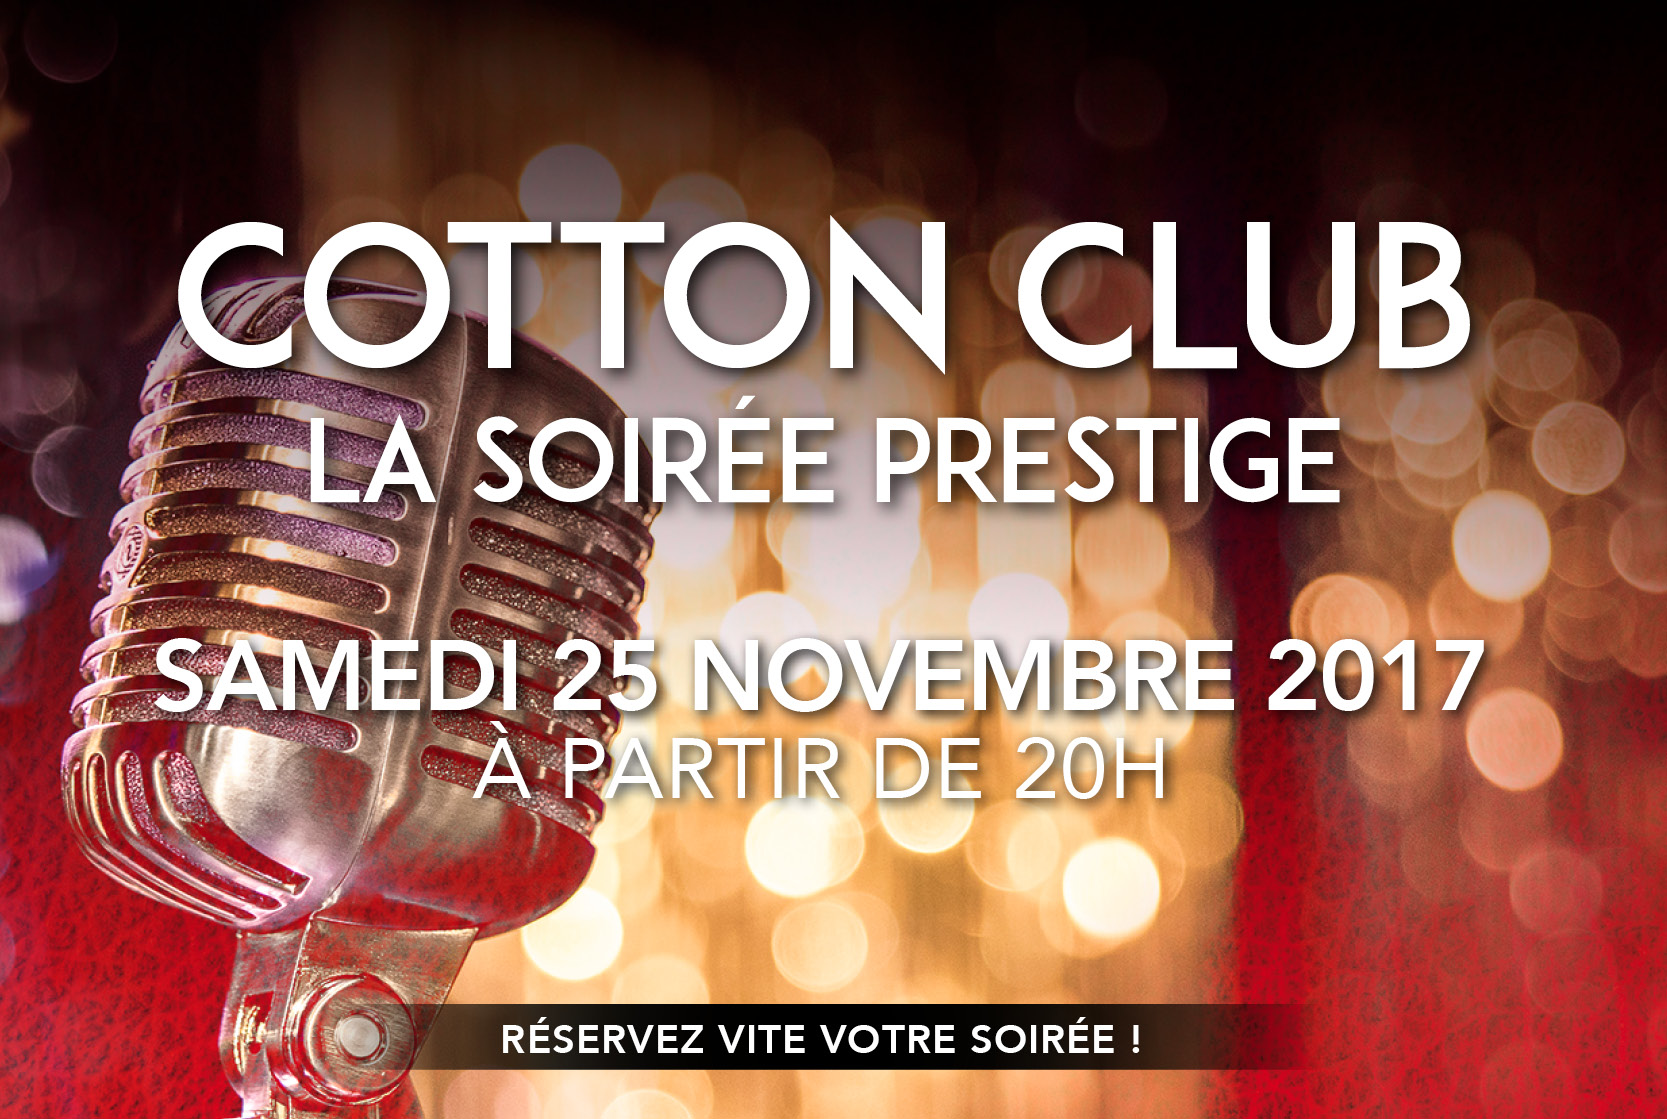 Soirée Prestige Jazz Cotton Club au Palais Beaumont